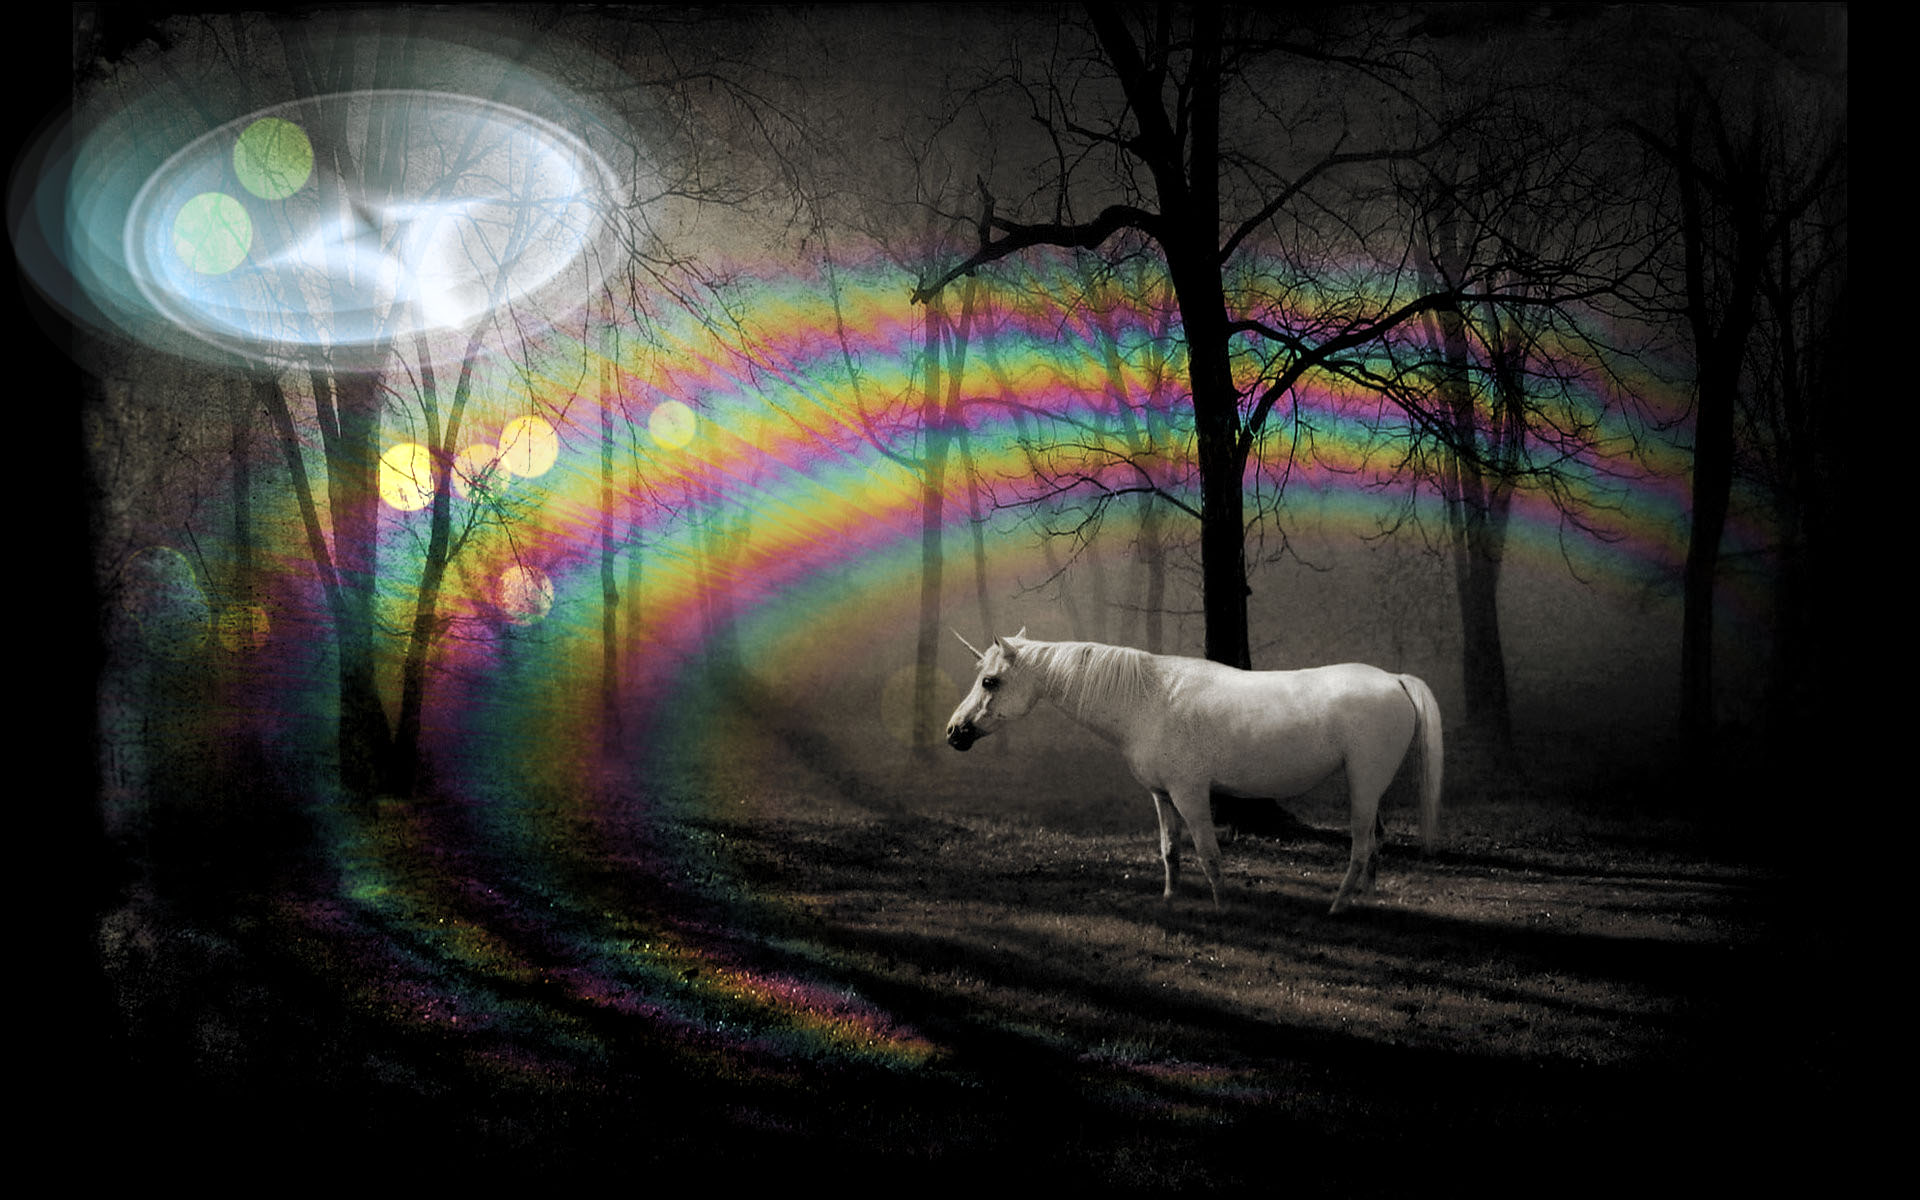 unicorn wallpapers full hd - photo #15